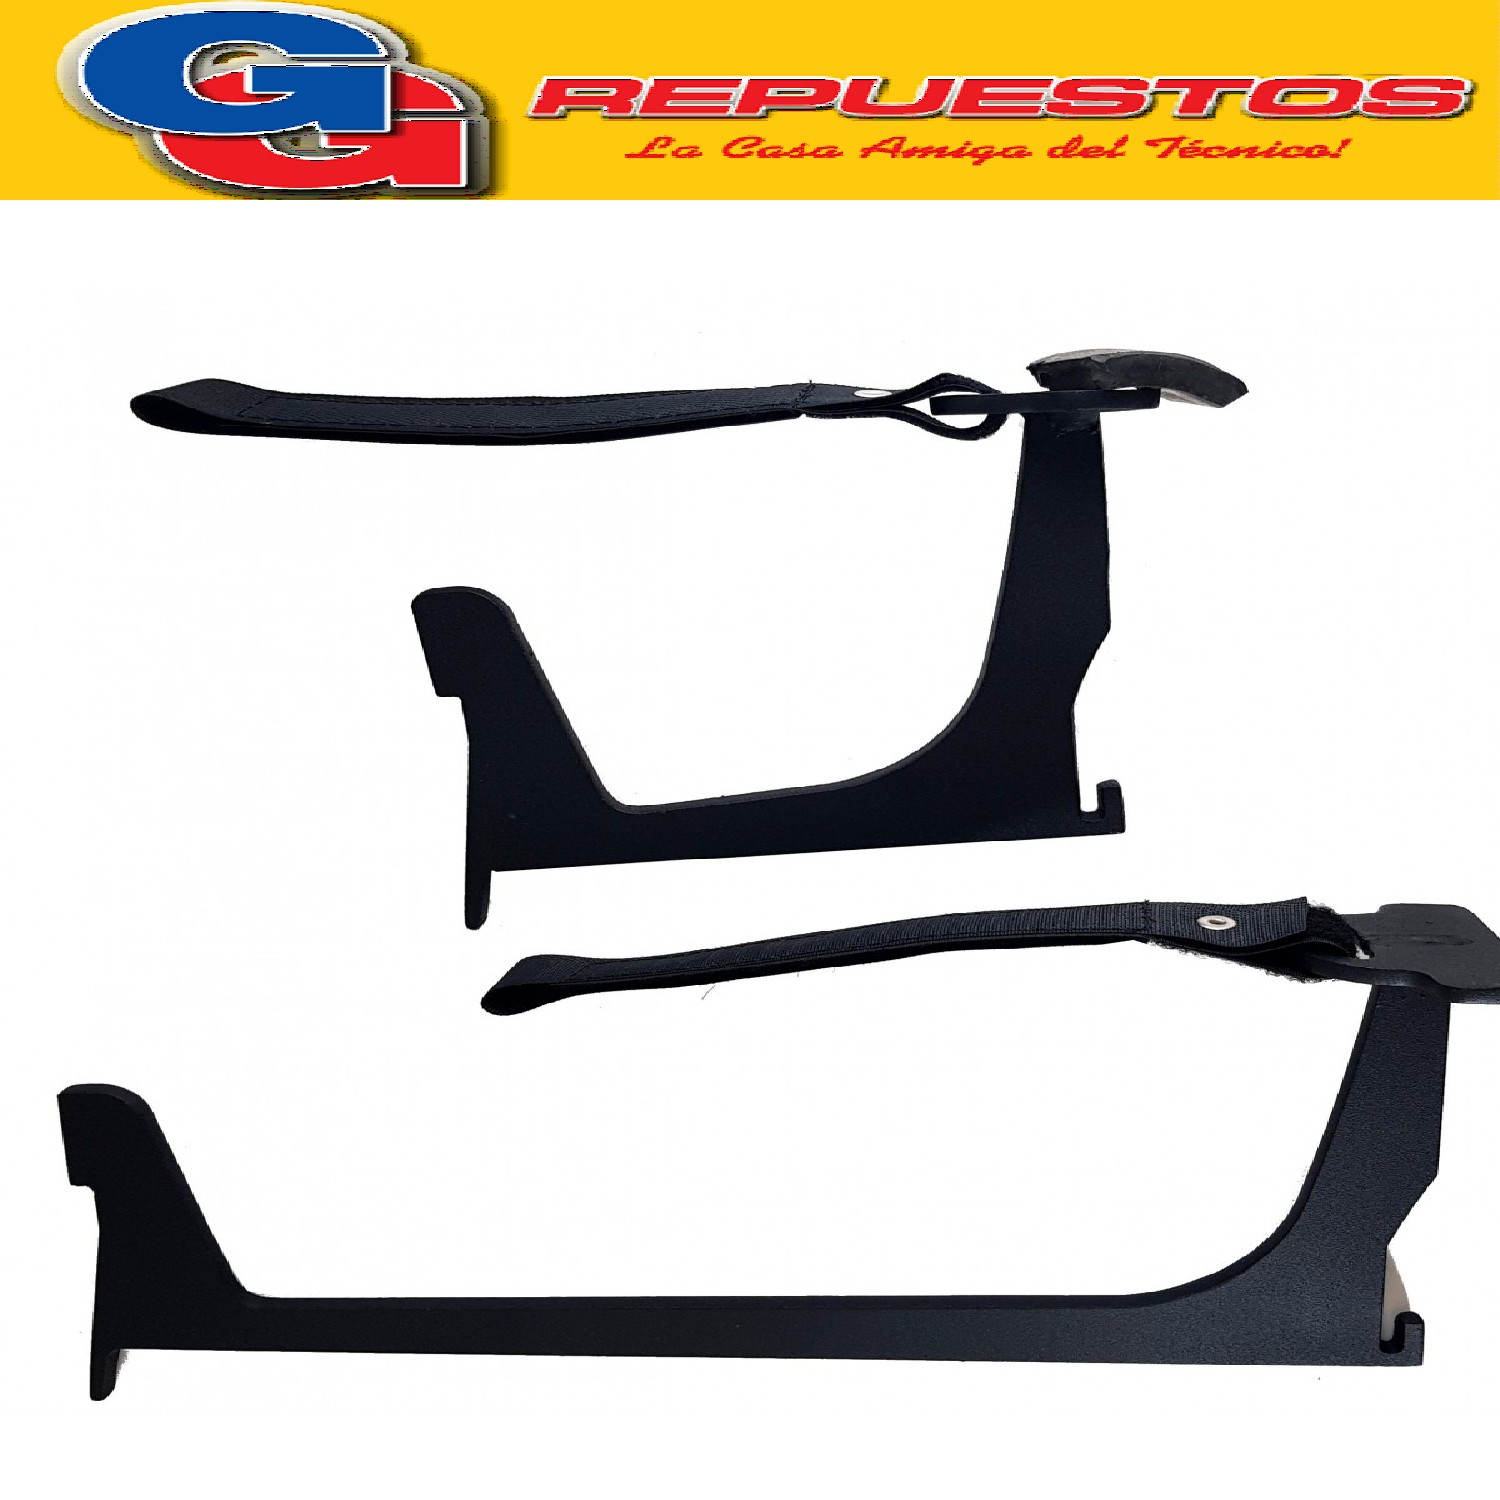 CONTROL REMOTO LCD LED TOP HOUSE LCD499 3873